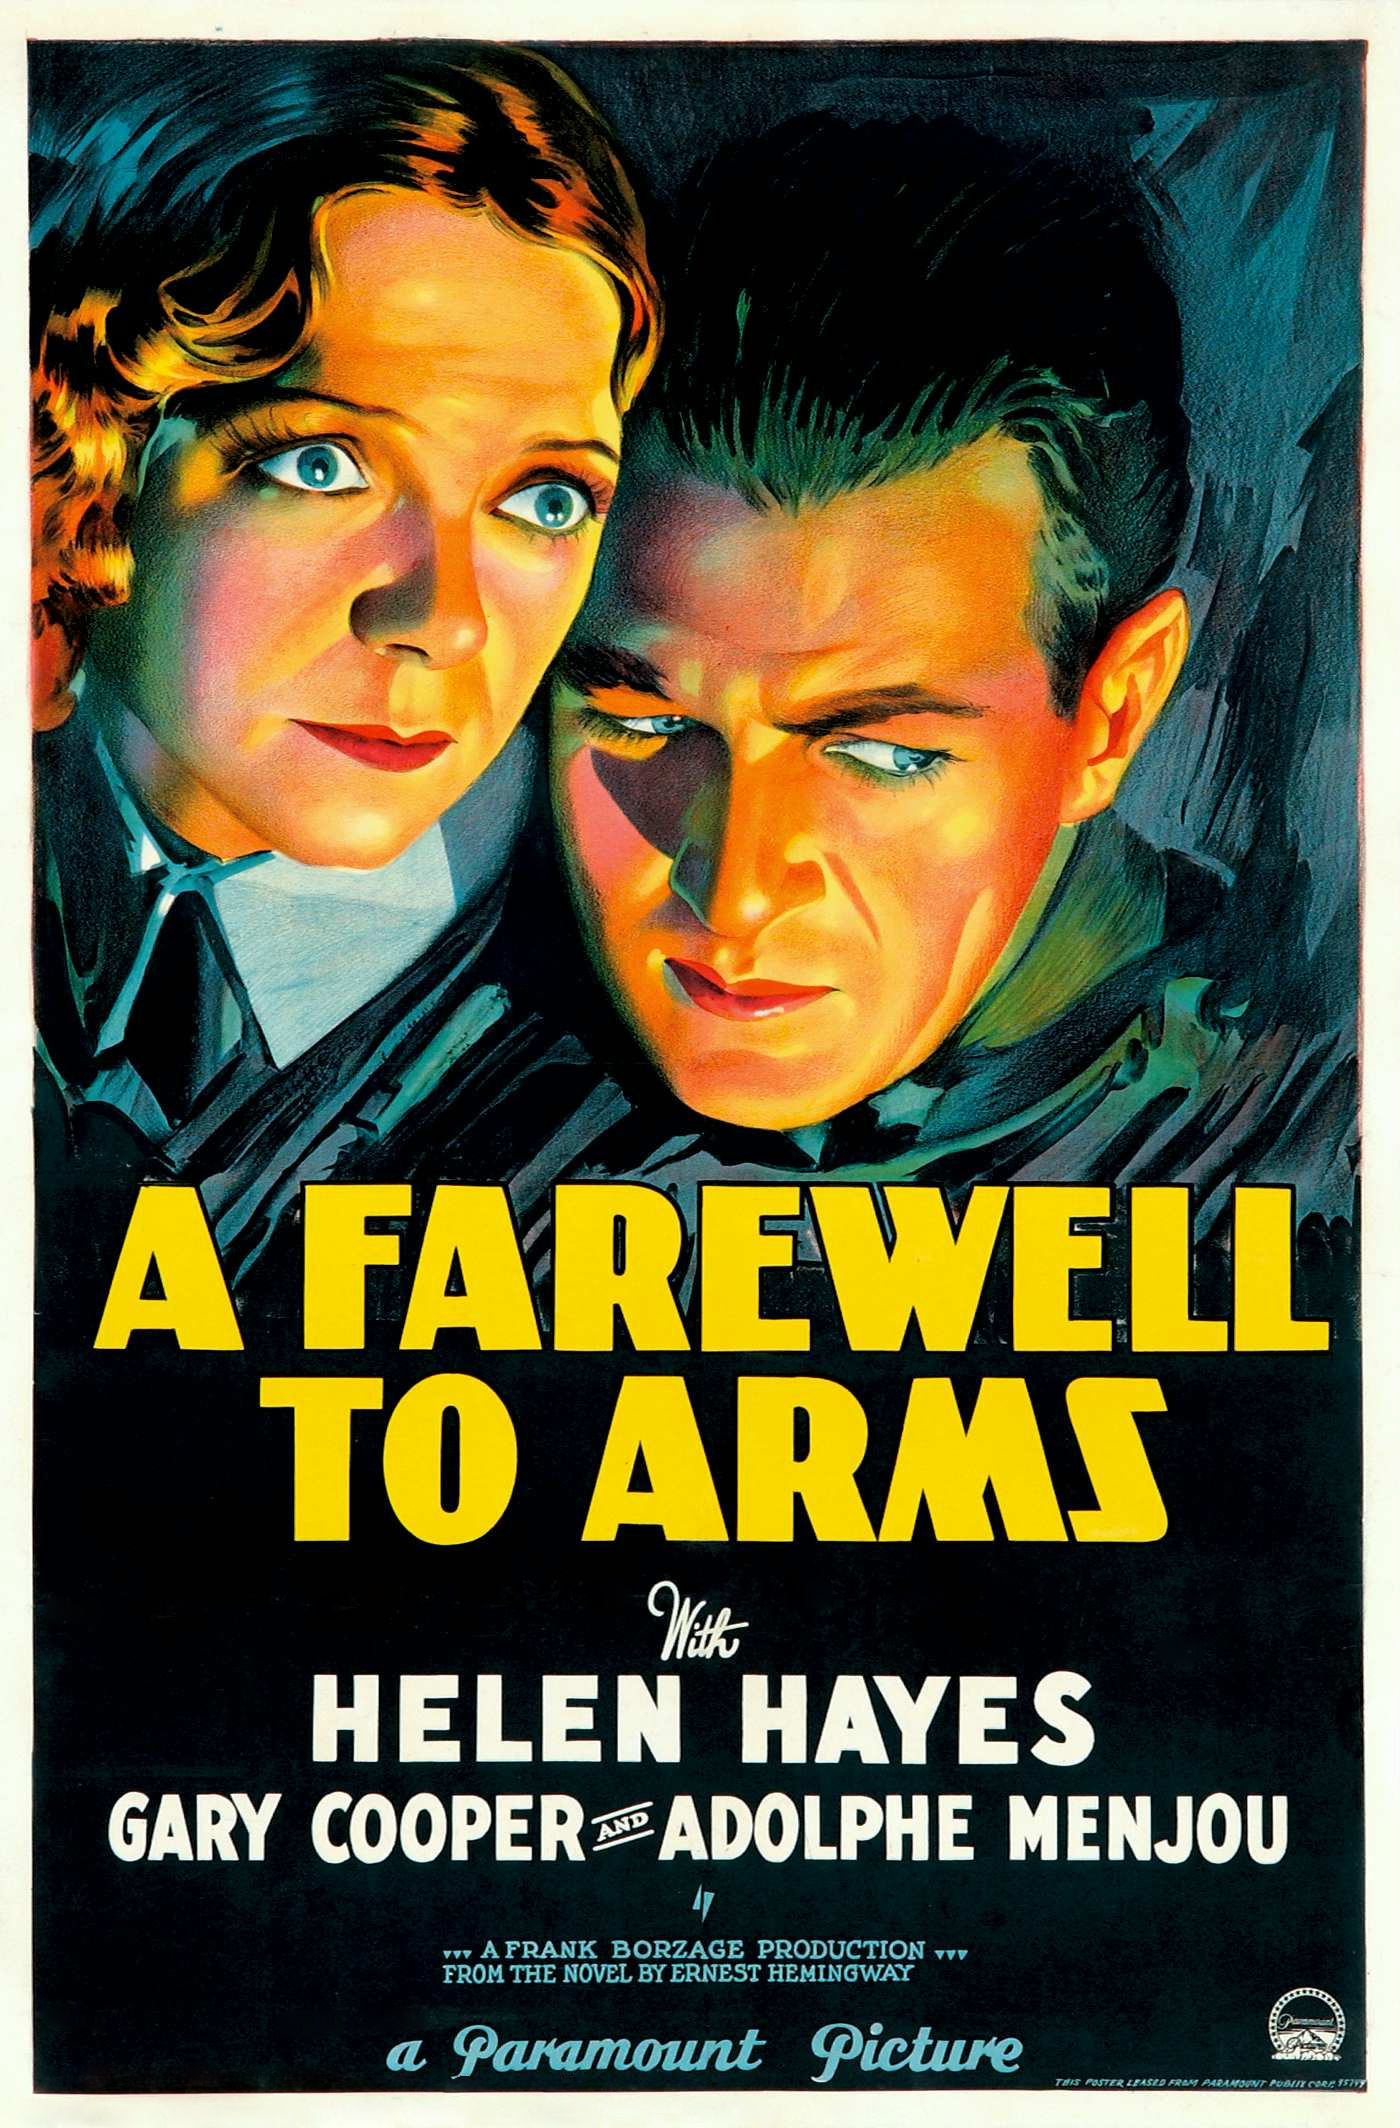 war in a farewell to arms Watch online full movie a farewell to arms (1932) for free an american ambulance driver and an english nurse fall in love in italy during world war i director: frank borzage writers: benjamin glazer (screenplay), oliver hp garrett (screenplay) stars: gary cooper, helen hayes, adolphe menjou.